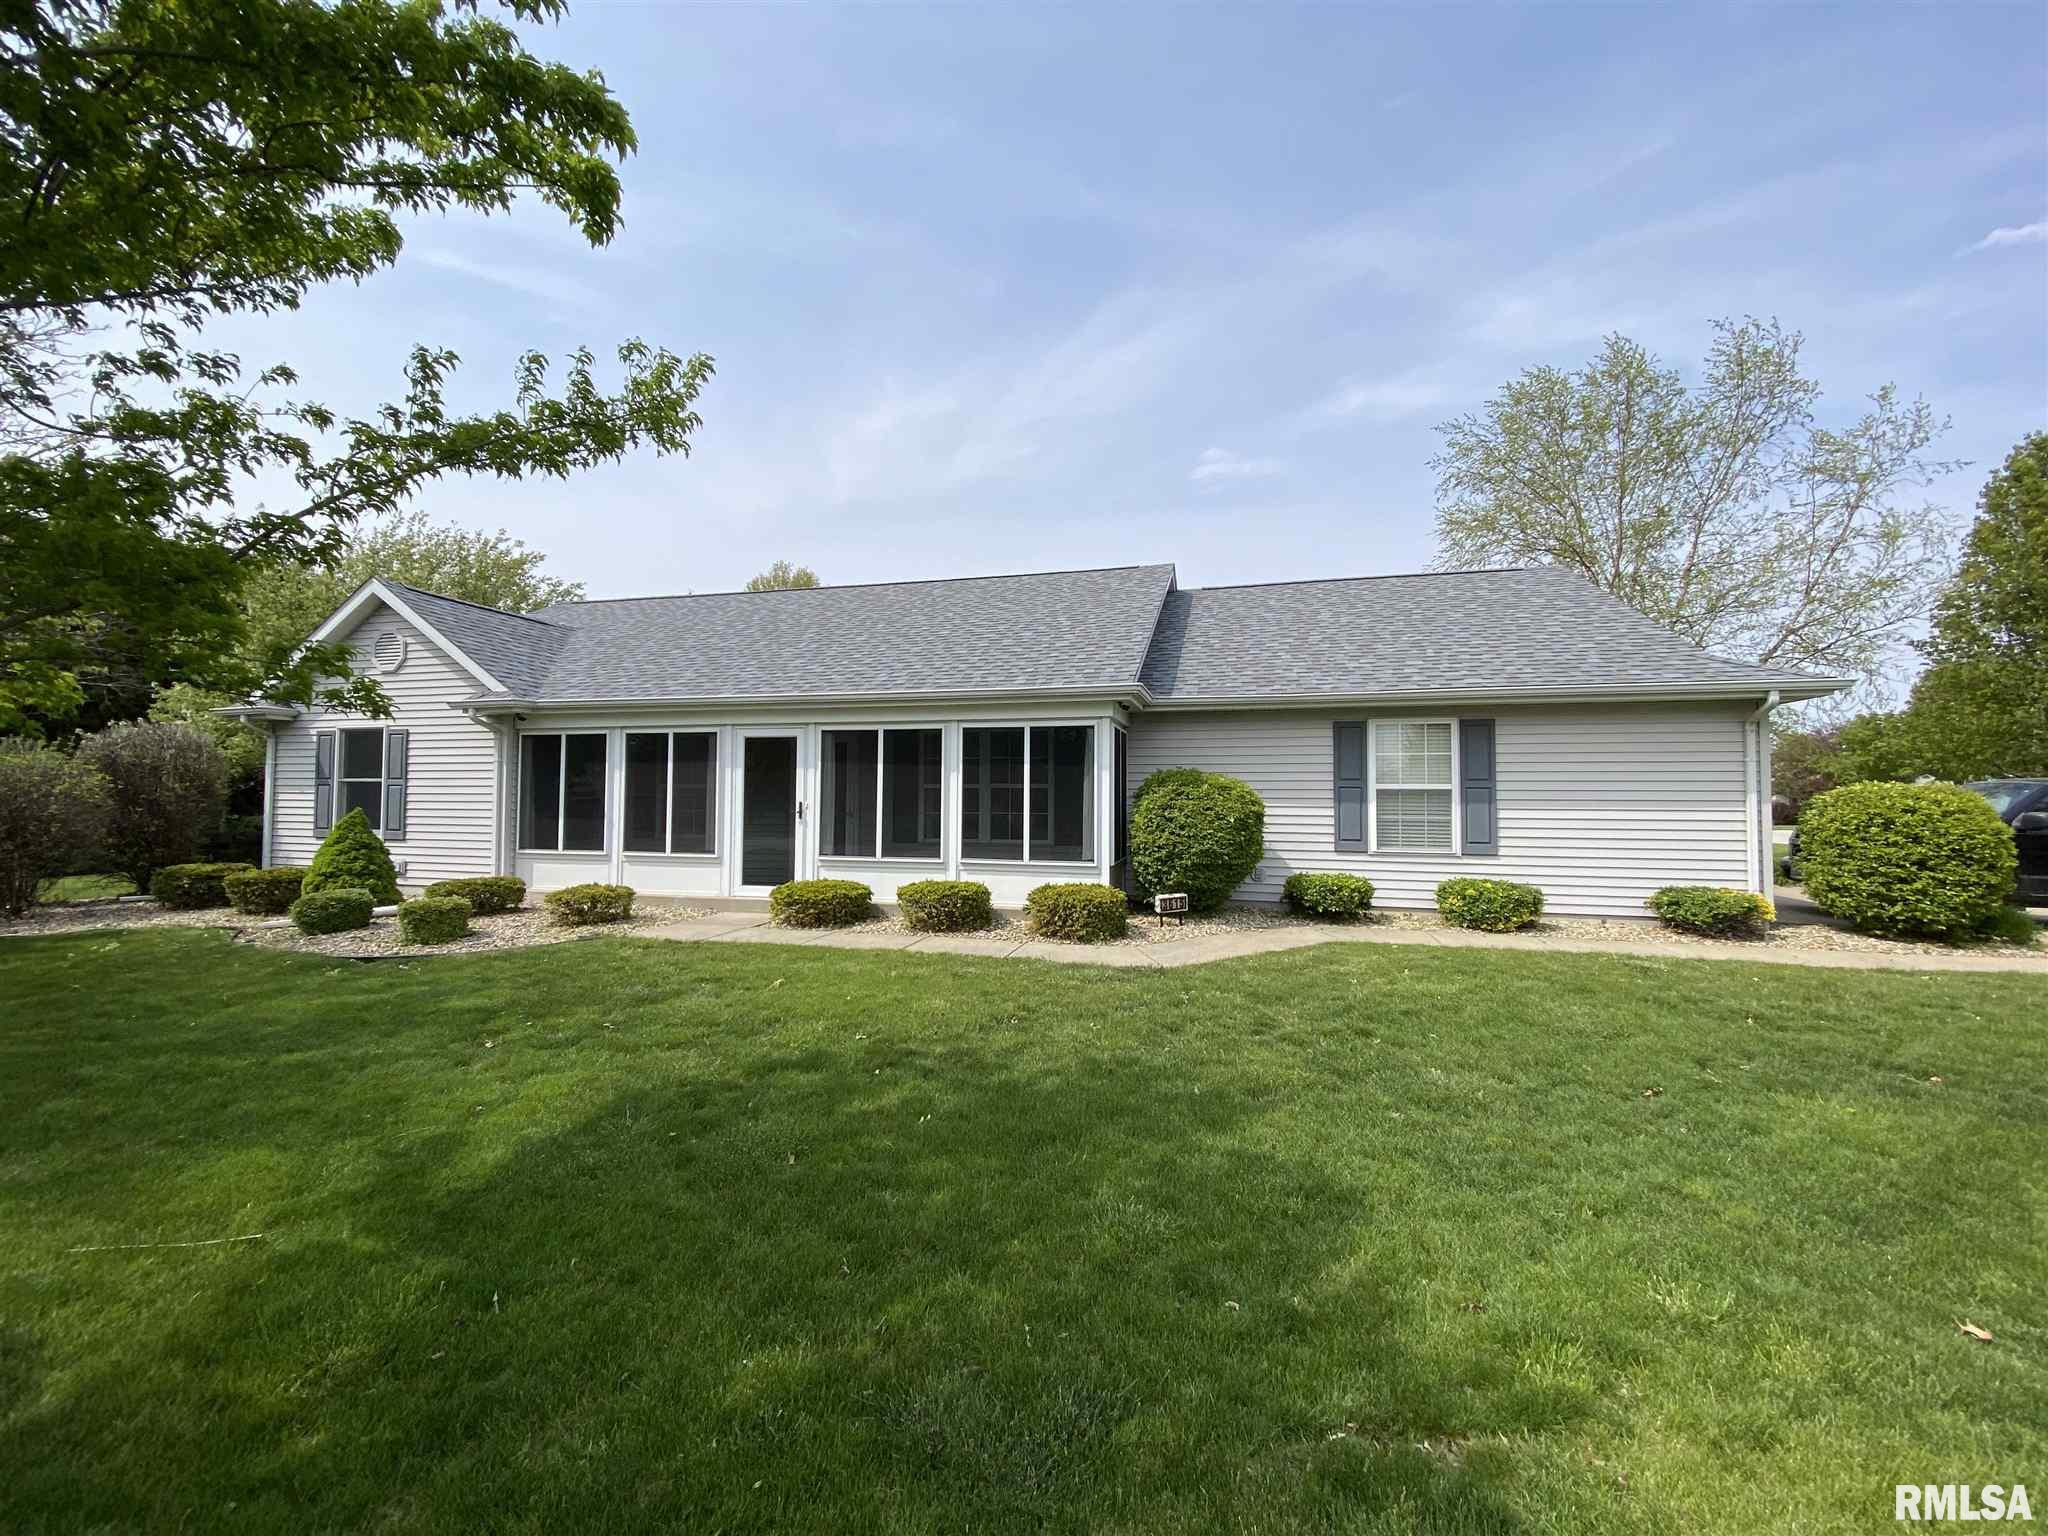 3615 E SUNSET Property Photo - Taylorville, IL real estate listing